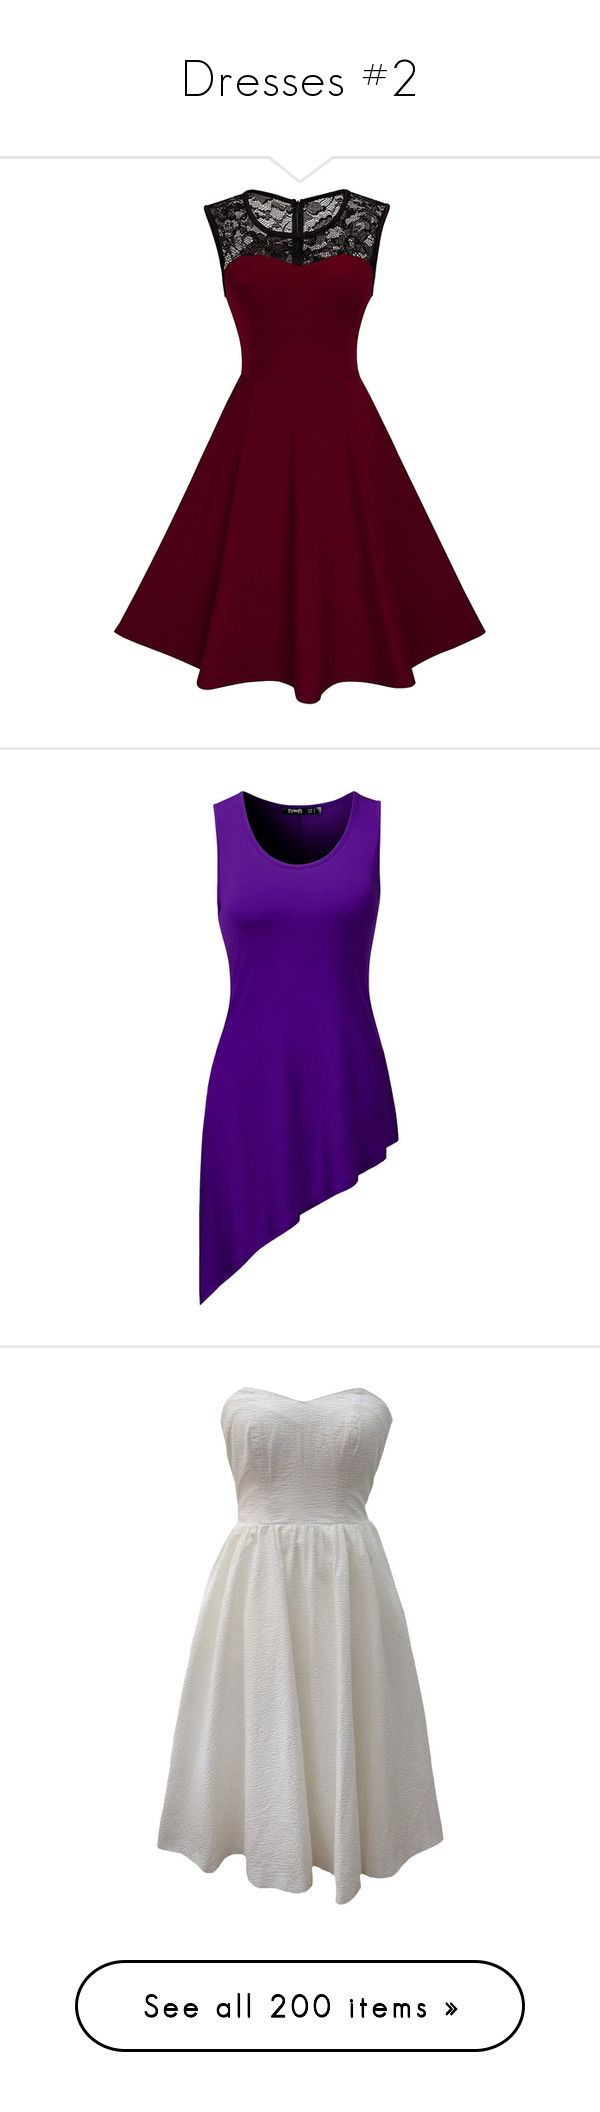 """""""Dresses #2"""" by dino-satan666 ❤ liked on Polyvore featuring dresses, evening dresses, holiday dresses, cocktail dresses, vintage dresses, purple dresses, tops, tunics, purple top and purple tunic"""